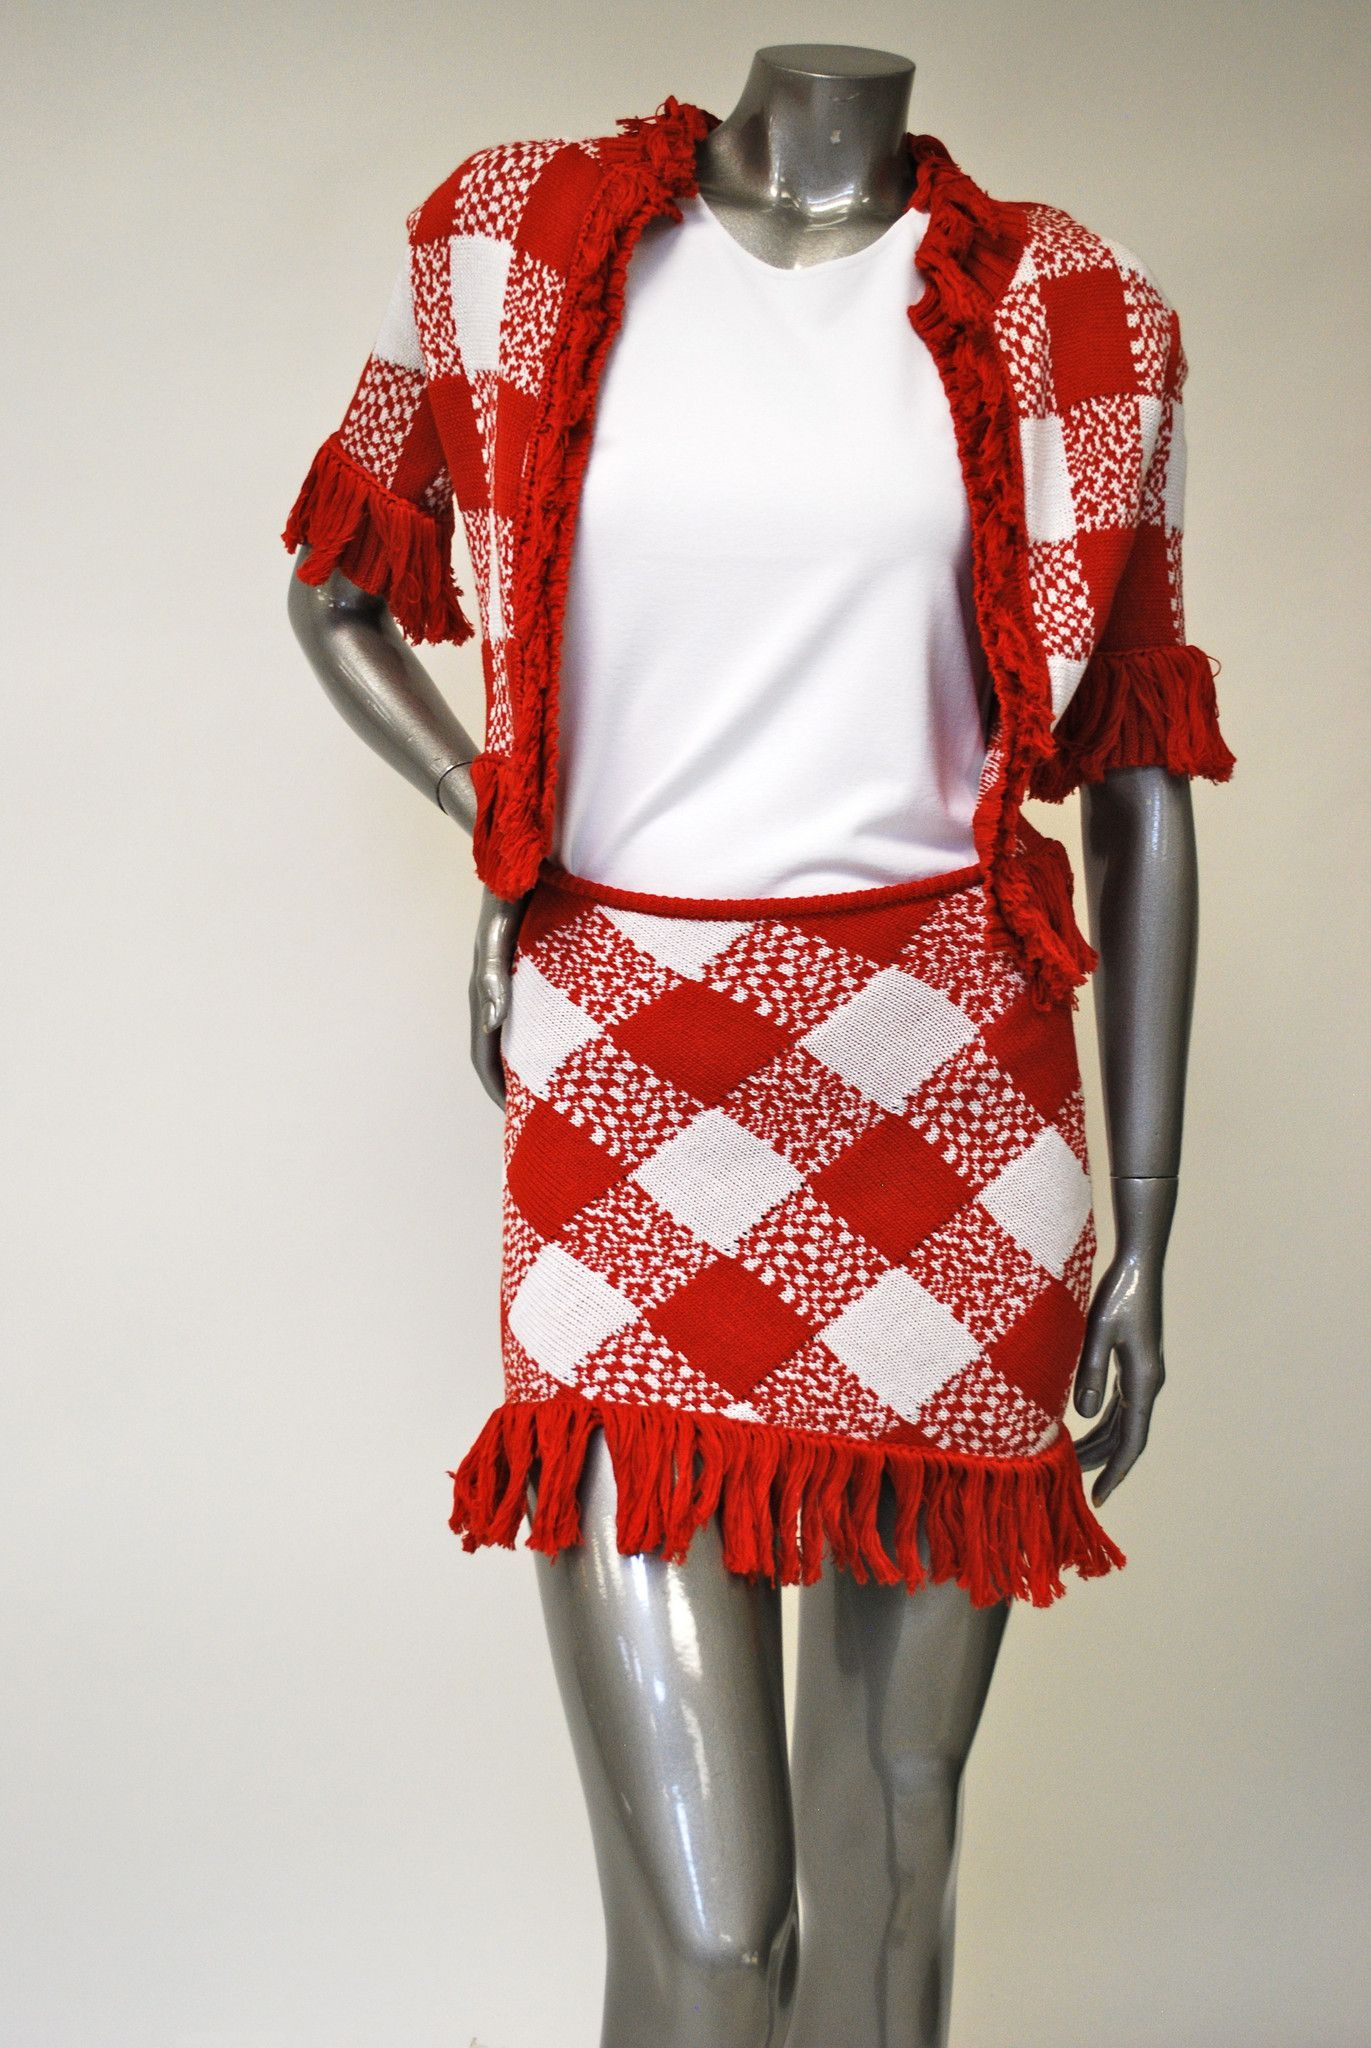 9821f250f7d6 Red and White Fringe Skirt Sale - Checkered Pattern   Products ...